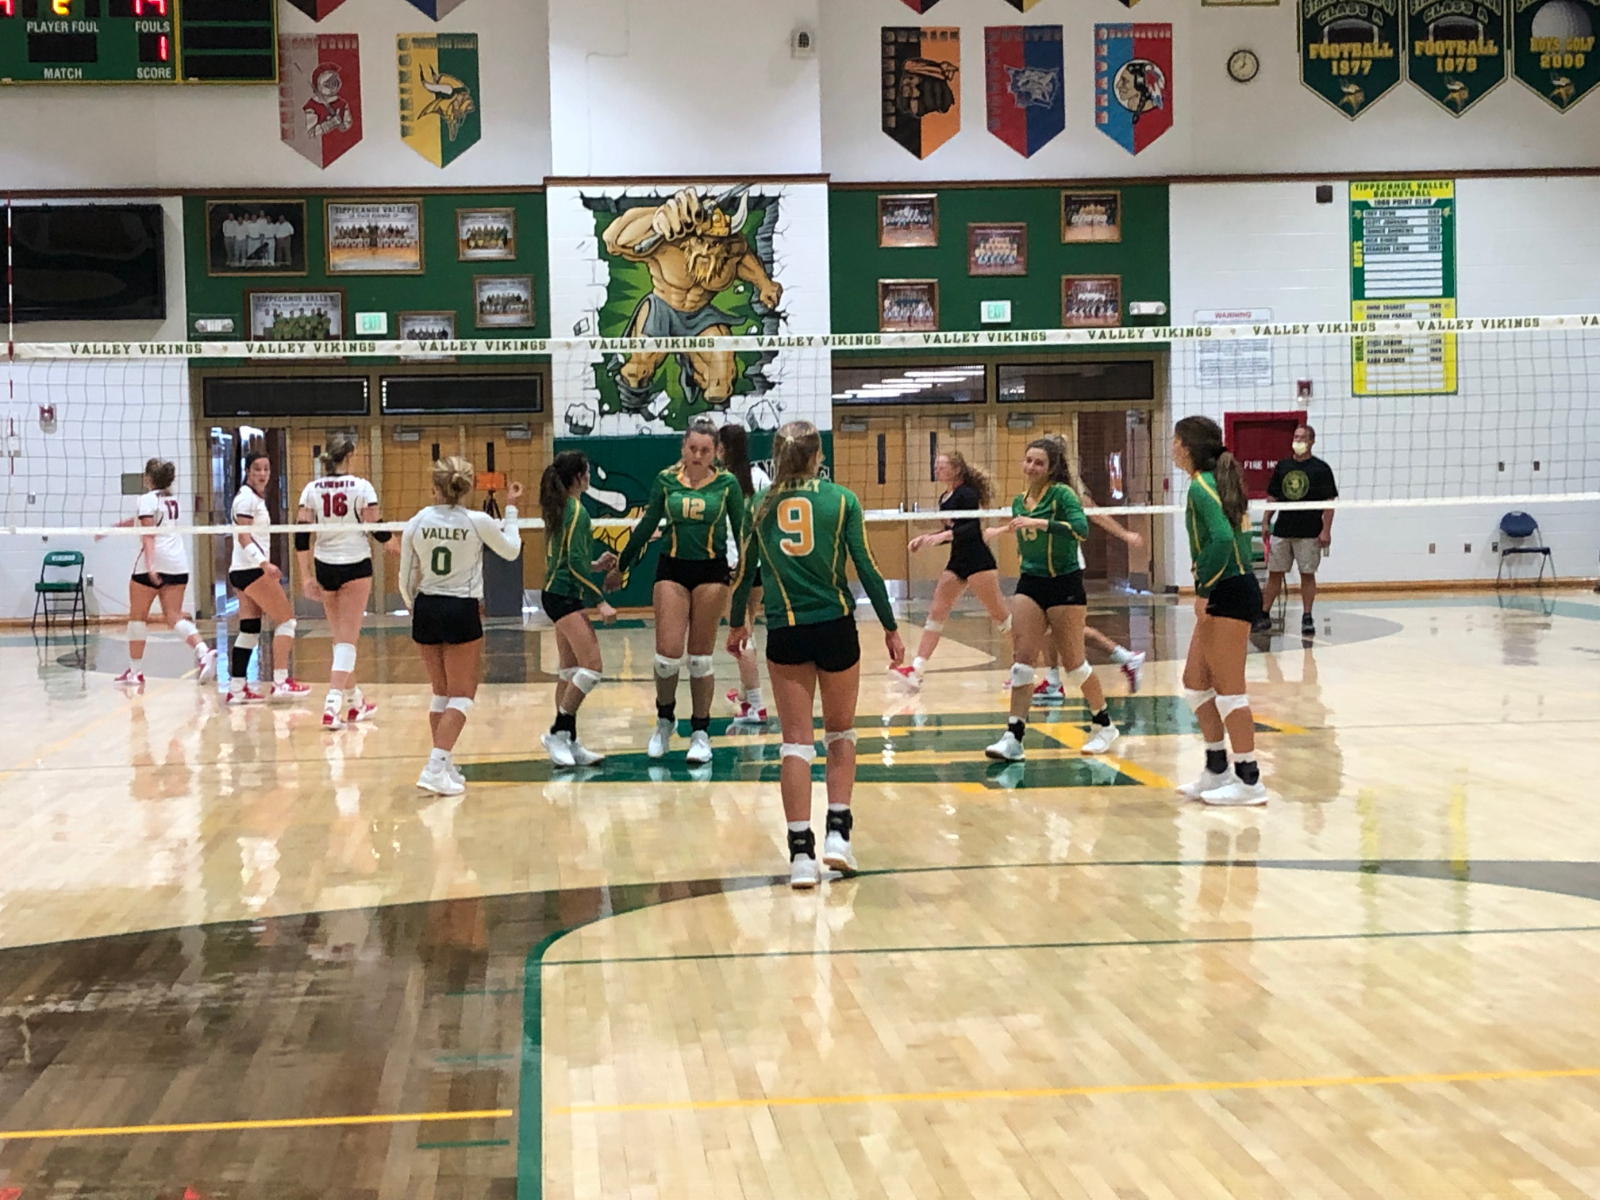 PHOTOS: Volleyball vs Plymouth 8/19/2020